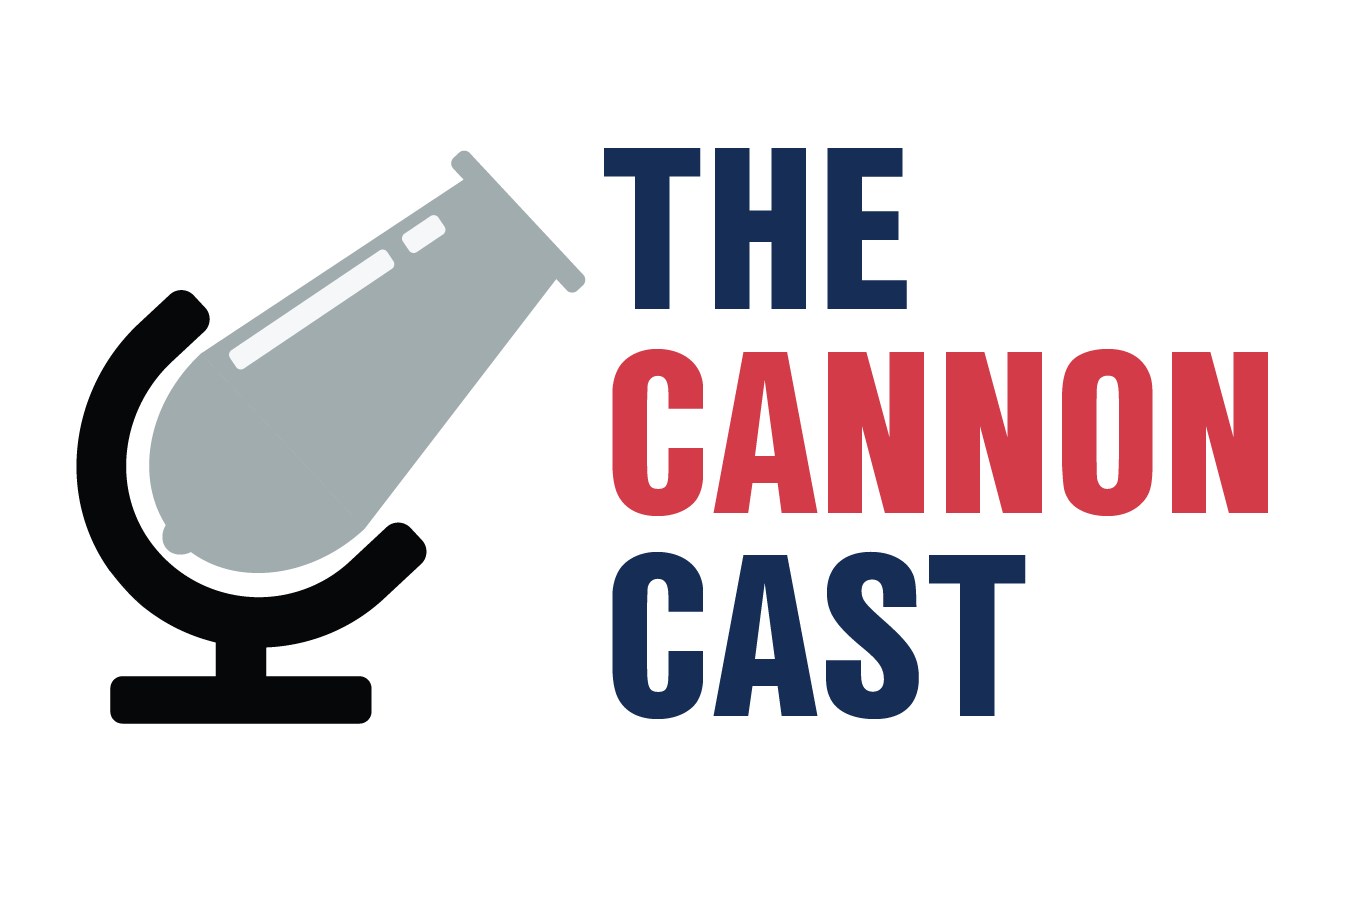 The Cannon Cast